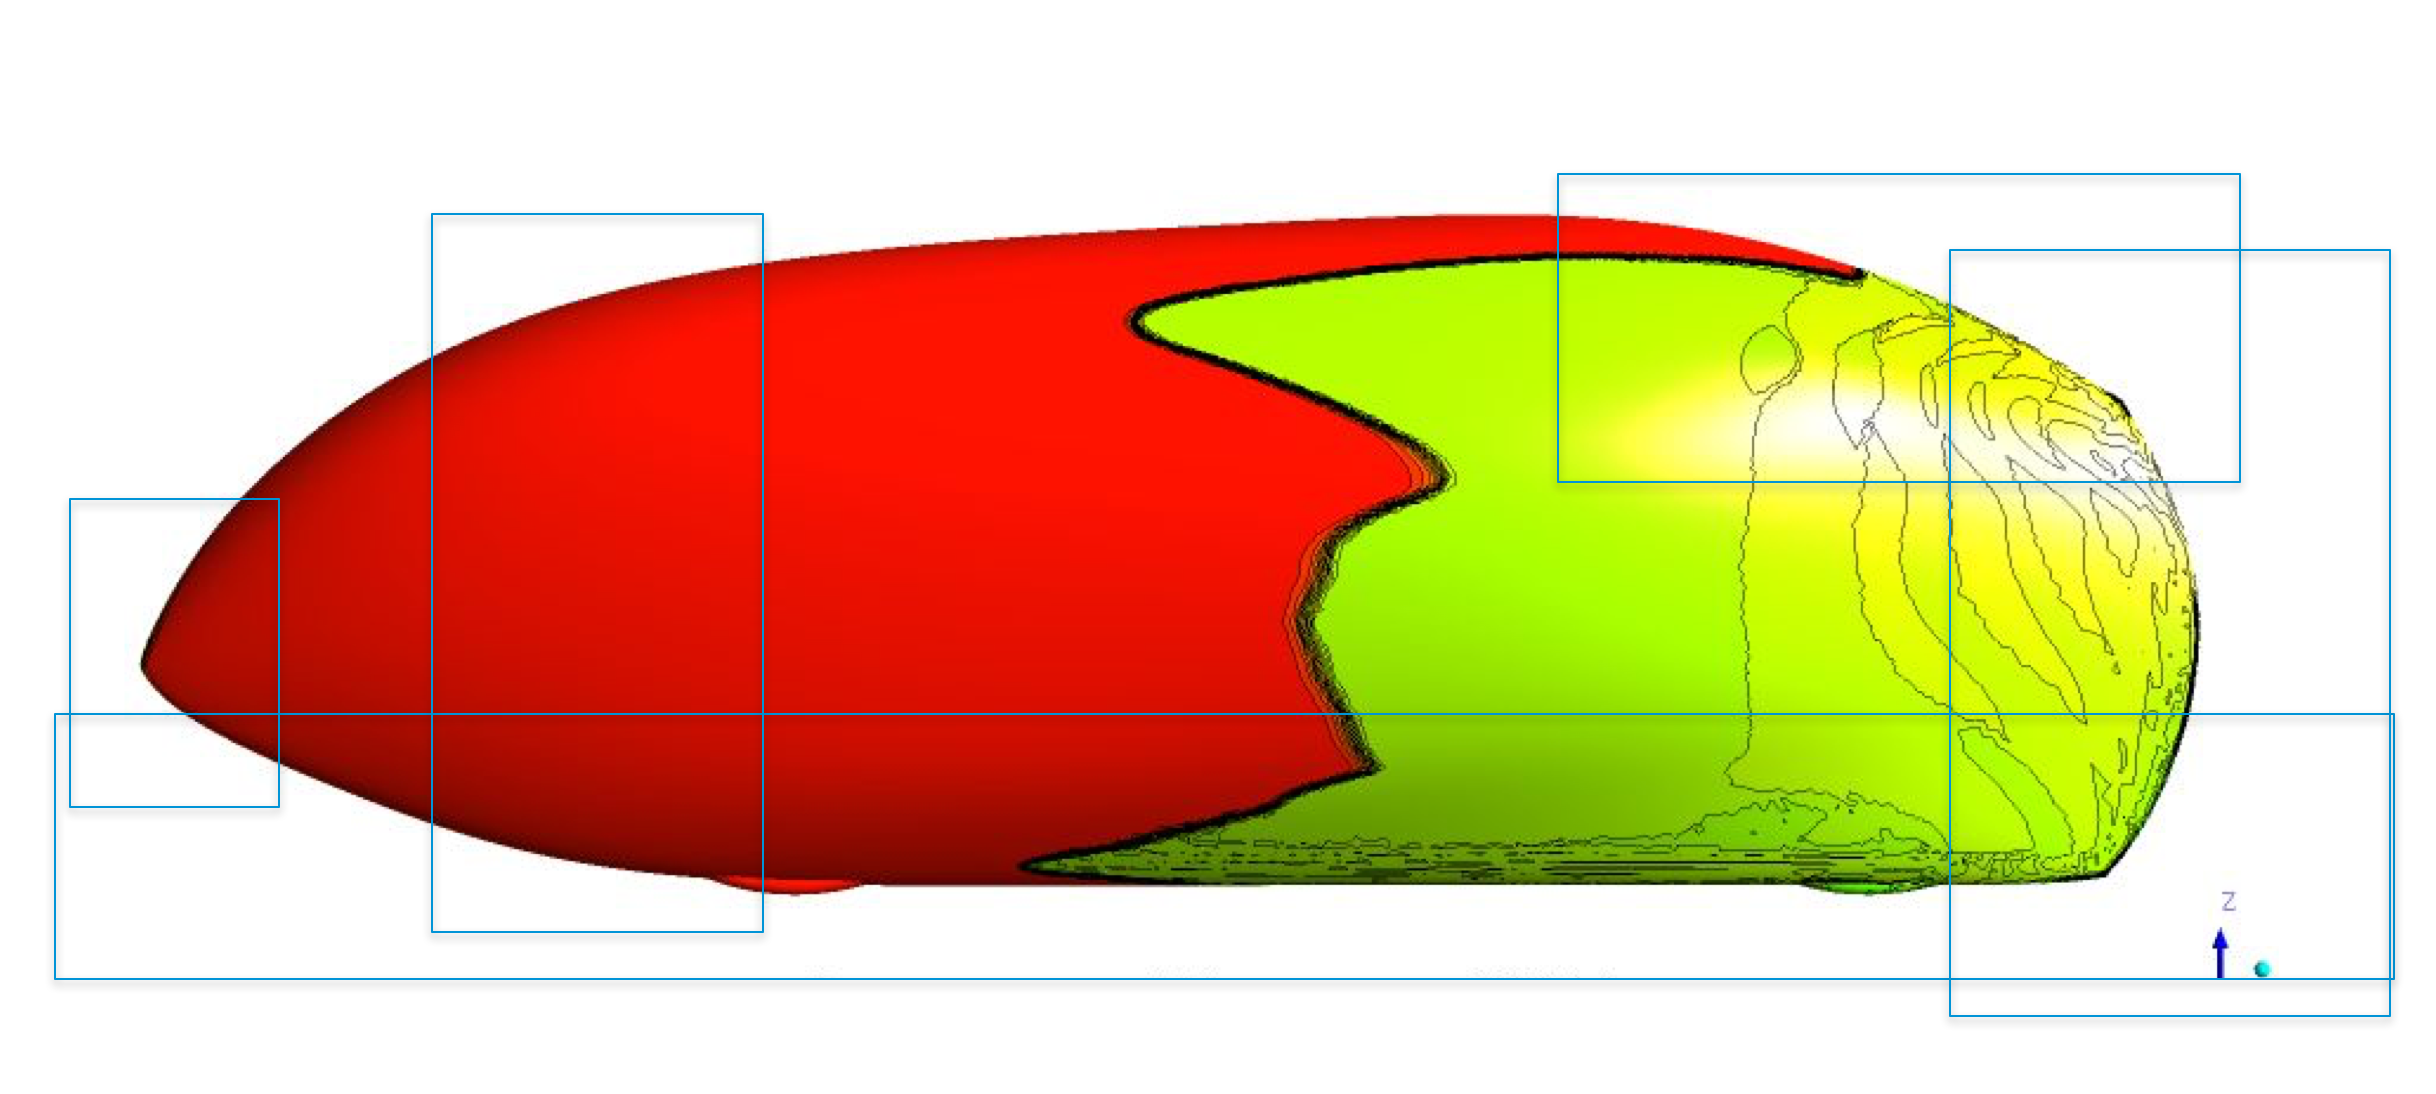 The higher the speed of travel, the more significant is the role of aerodynamics in the consumption of the available power - specifically the aerodynamic drag that accounts about 2/3 of the overall drag. The external shape of the HPV has been carefully developed since 2015 by aerodynamicist Glen Thompson using a digital wind tunnel simulation process called Computational Fluid Dynamics (CFD). This takes into account a number of critical factors, including the speed of travel, the lower air density at 1400m altitude, and the smoothness of the polished exterior surface.